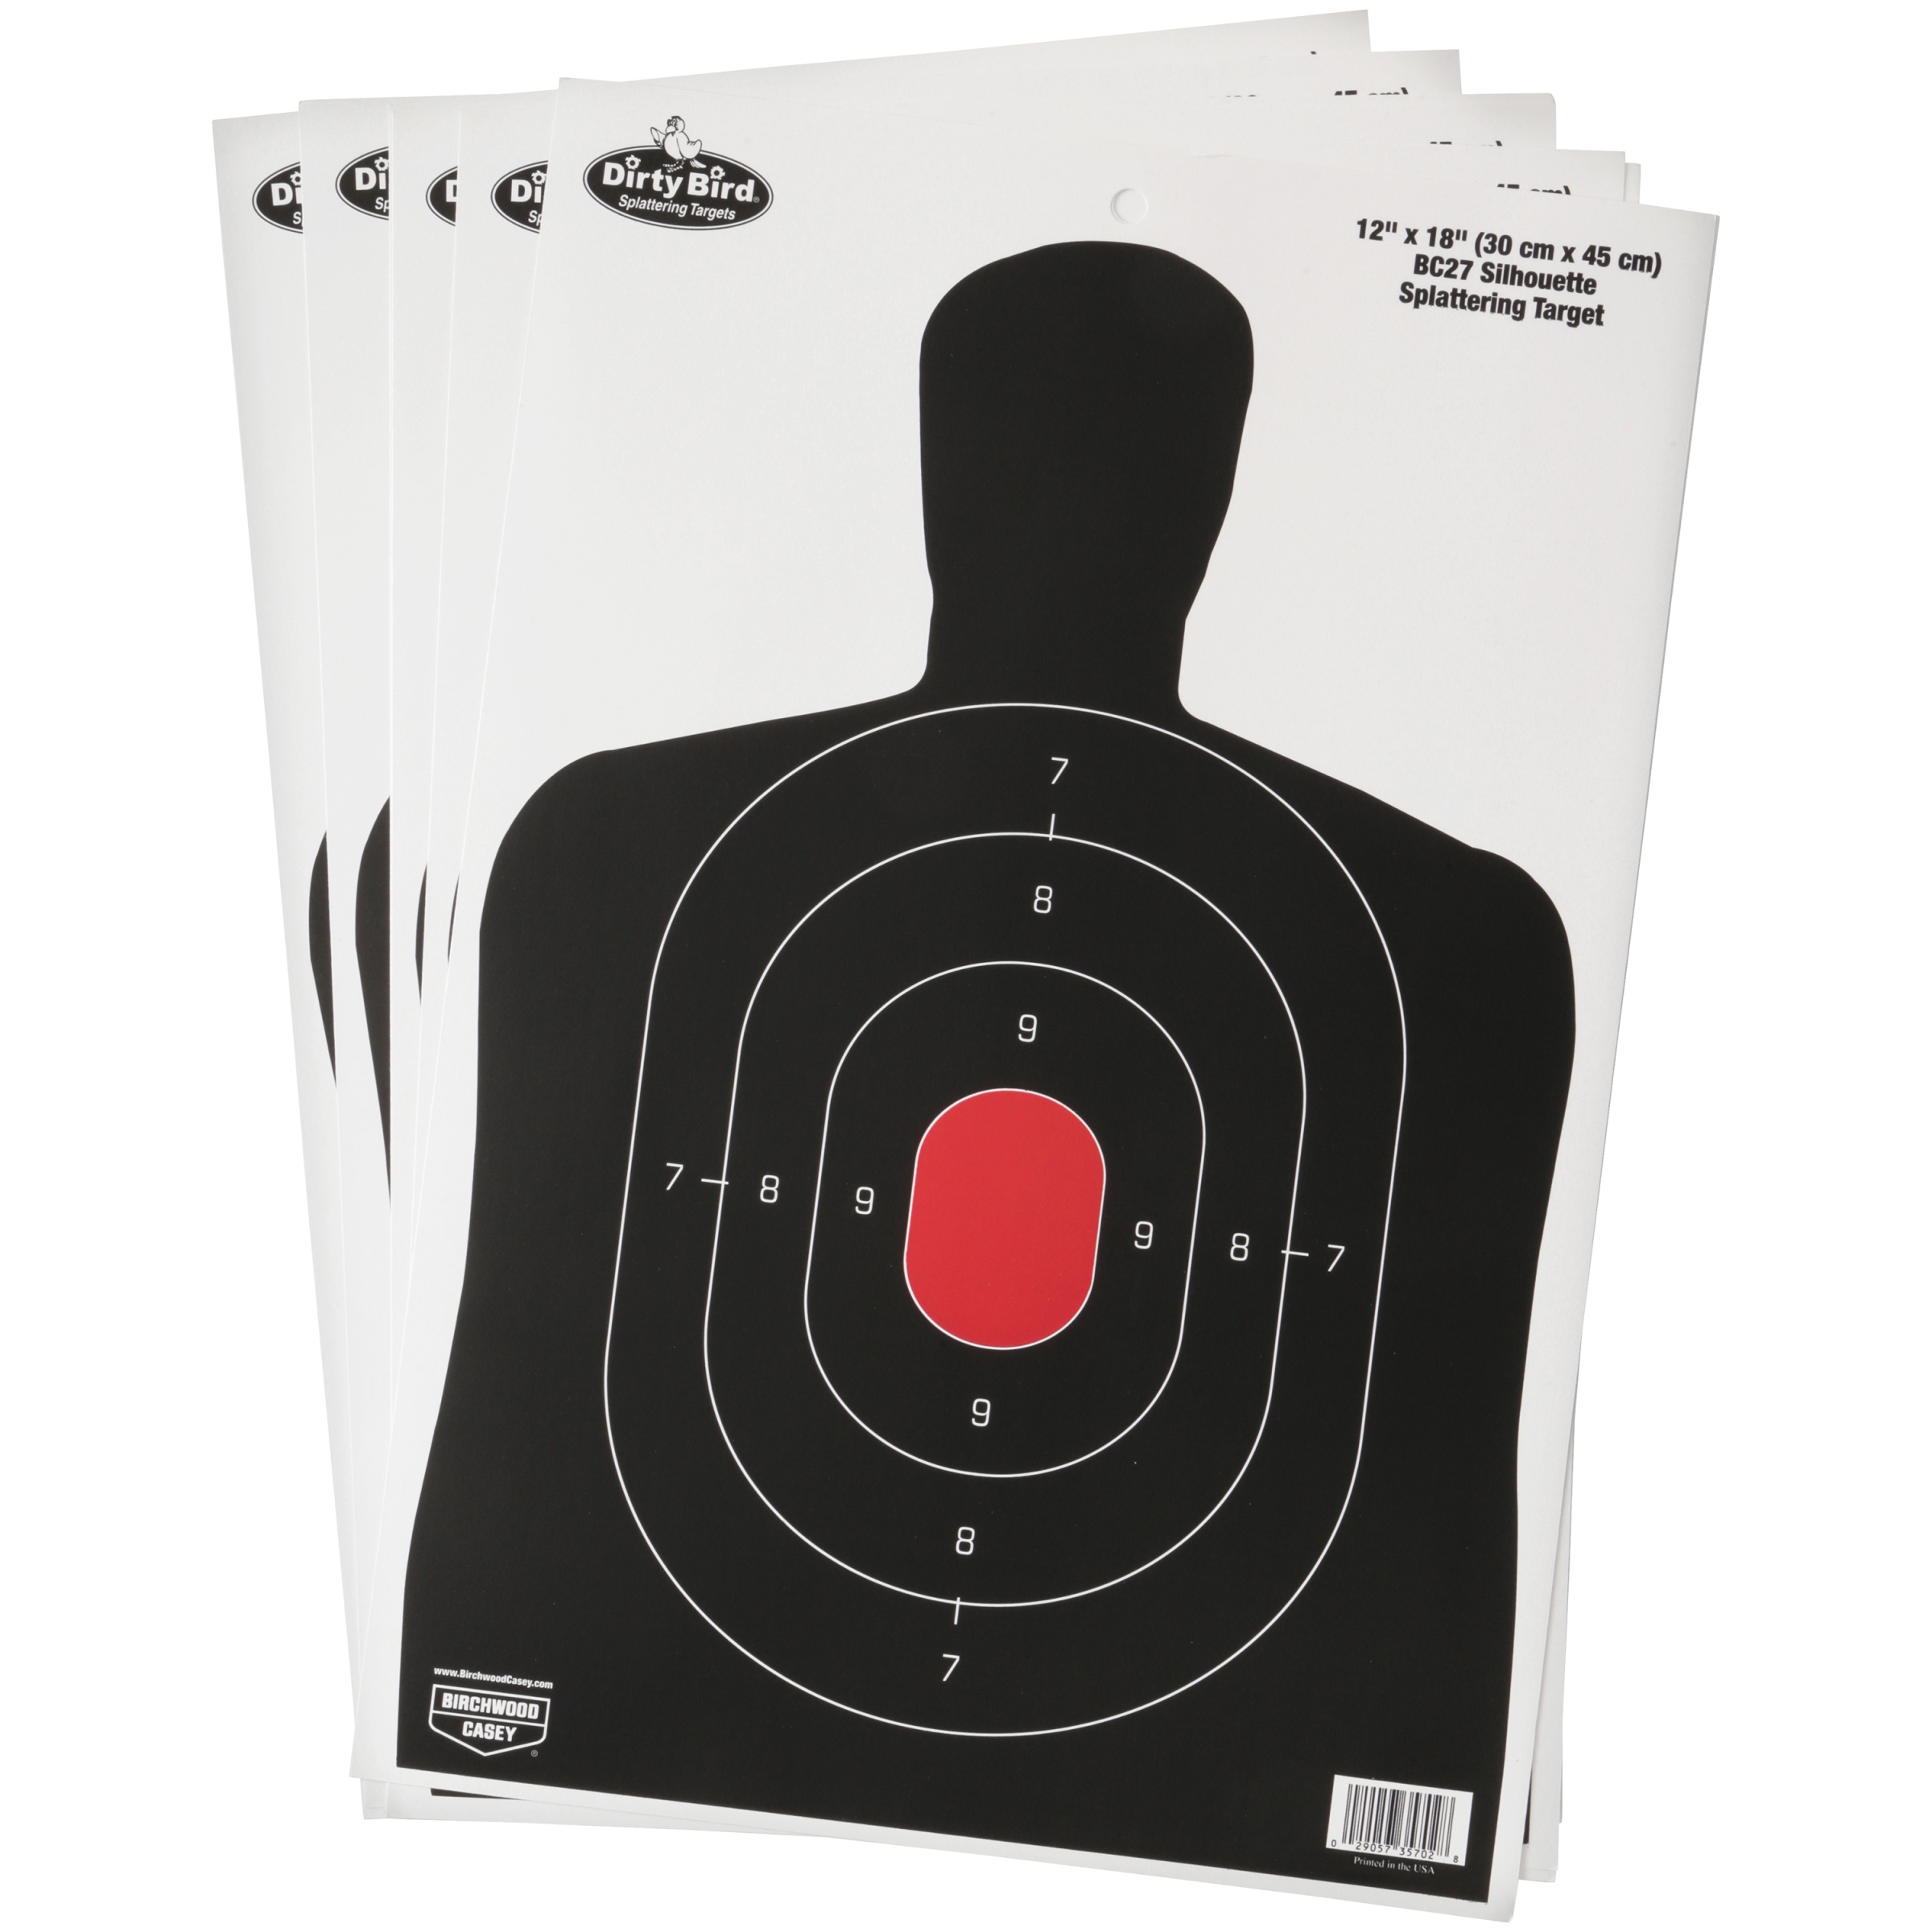 "Birchwood Casey Dirty Bird BC27 Shadow 12"" x 18"" Target, 8 Target Pack"